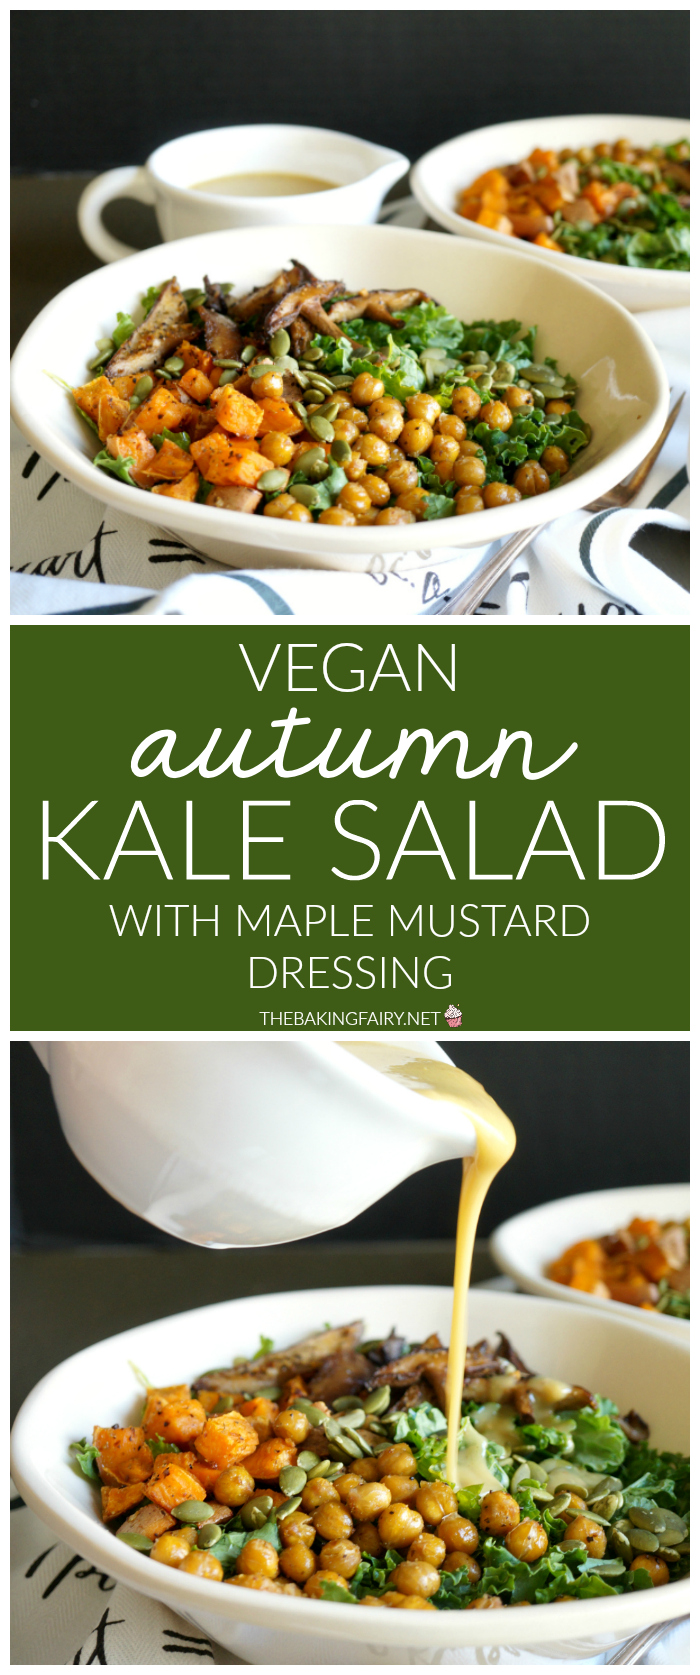 vegan autumn kale salad with roasted shiitakes and maple mustard dressing | The Baking Fairy